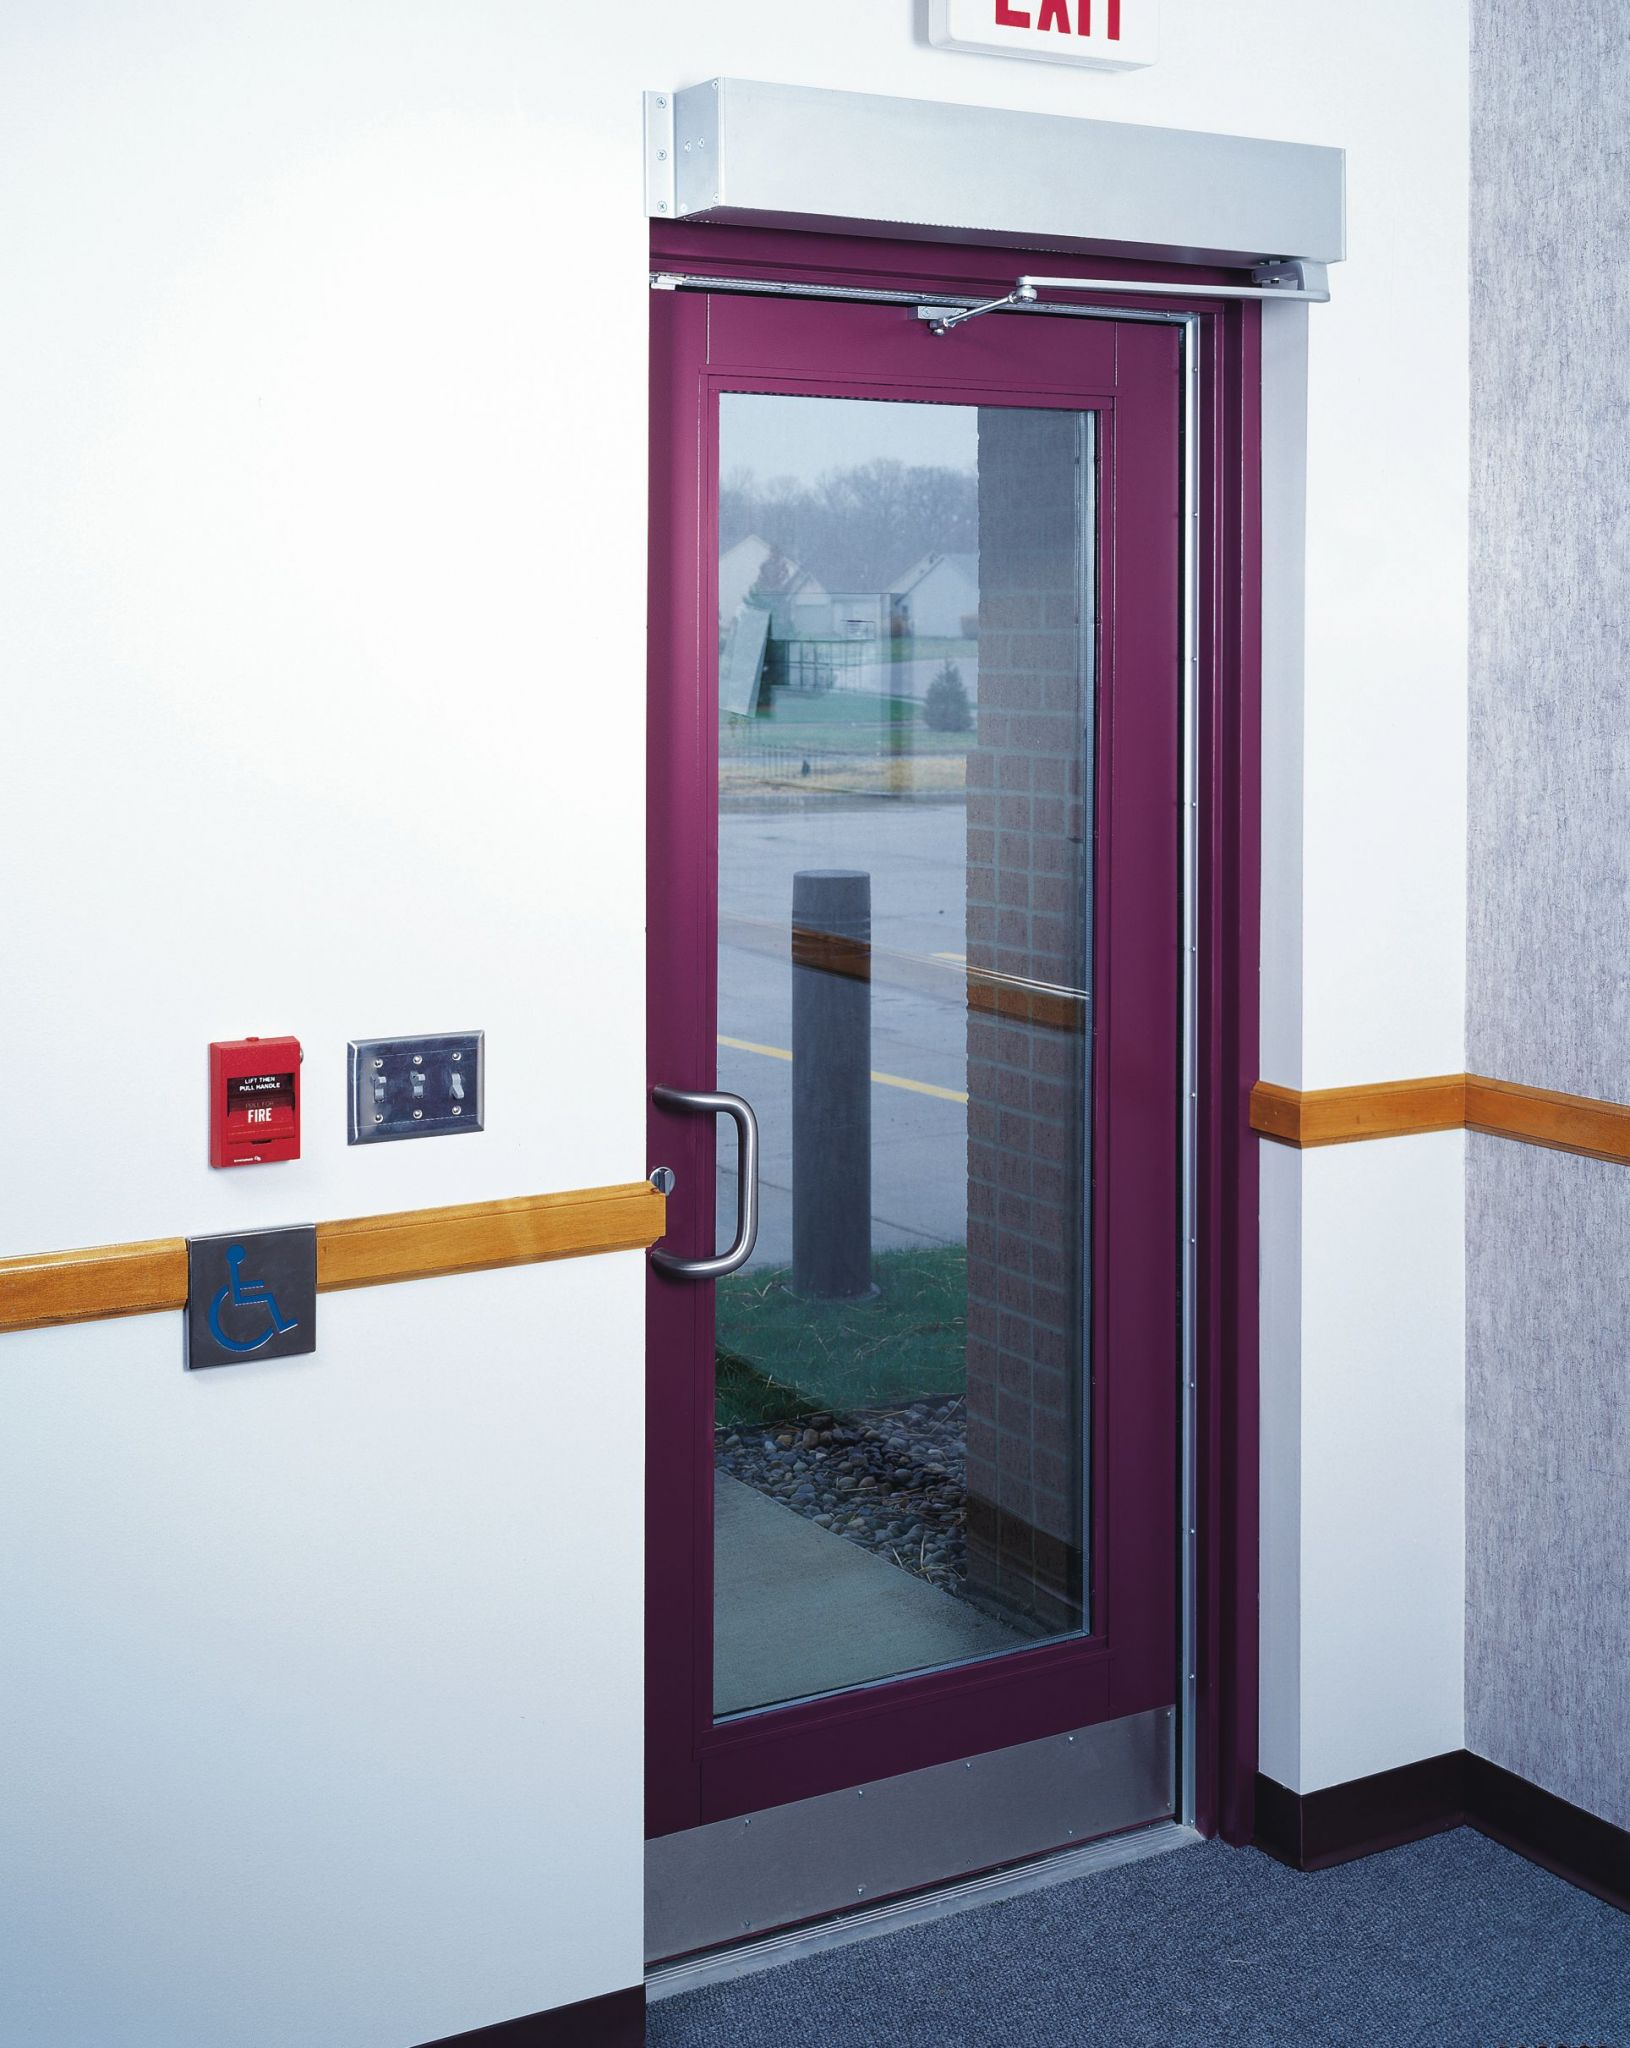 A low-energy automatic operator must be actuated by a knowing act (e.g. this wall-mounted push button) or must comply with the requirements of a Builders ... & Understanding new accessibility requirements for doors ...